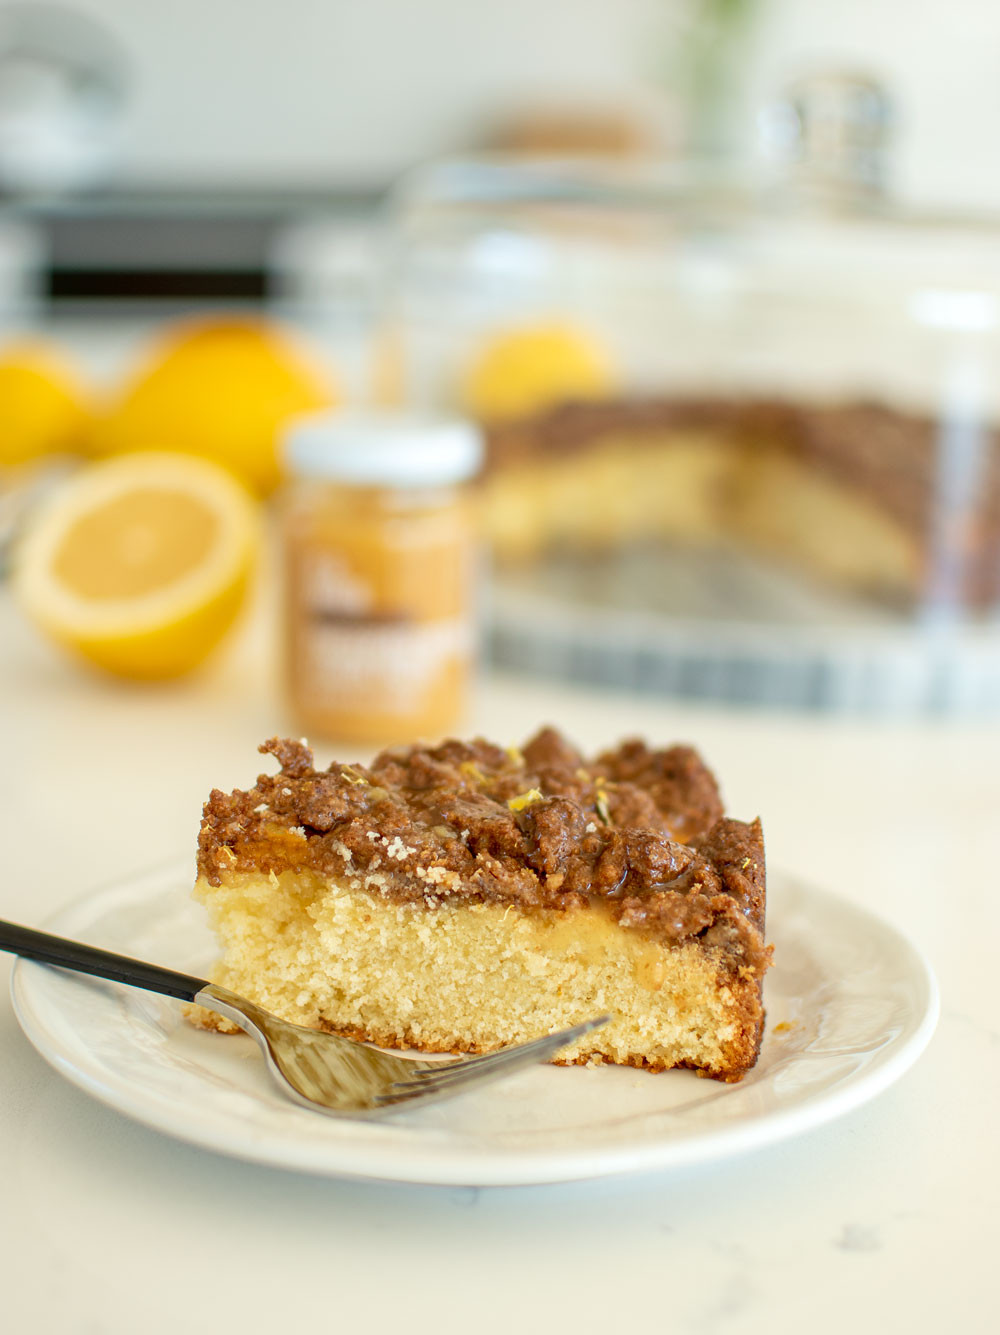 Easy Lemon Coffee Cake recipe for Christmas! This light and delicious Lemon Coffee Cake recipe uses If & When lemon paste for a true lemon flavor. This cake can easily be baked at high altitude and also gluten free using my simple adjustments #coffeecake #cake #organic #organiccake #organiccoffeecake #lemoncake #lemonpaste #highaltitudebaking